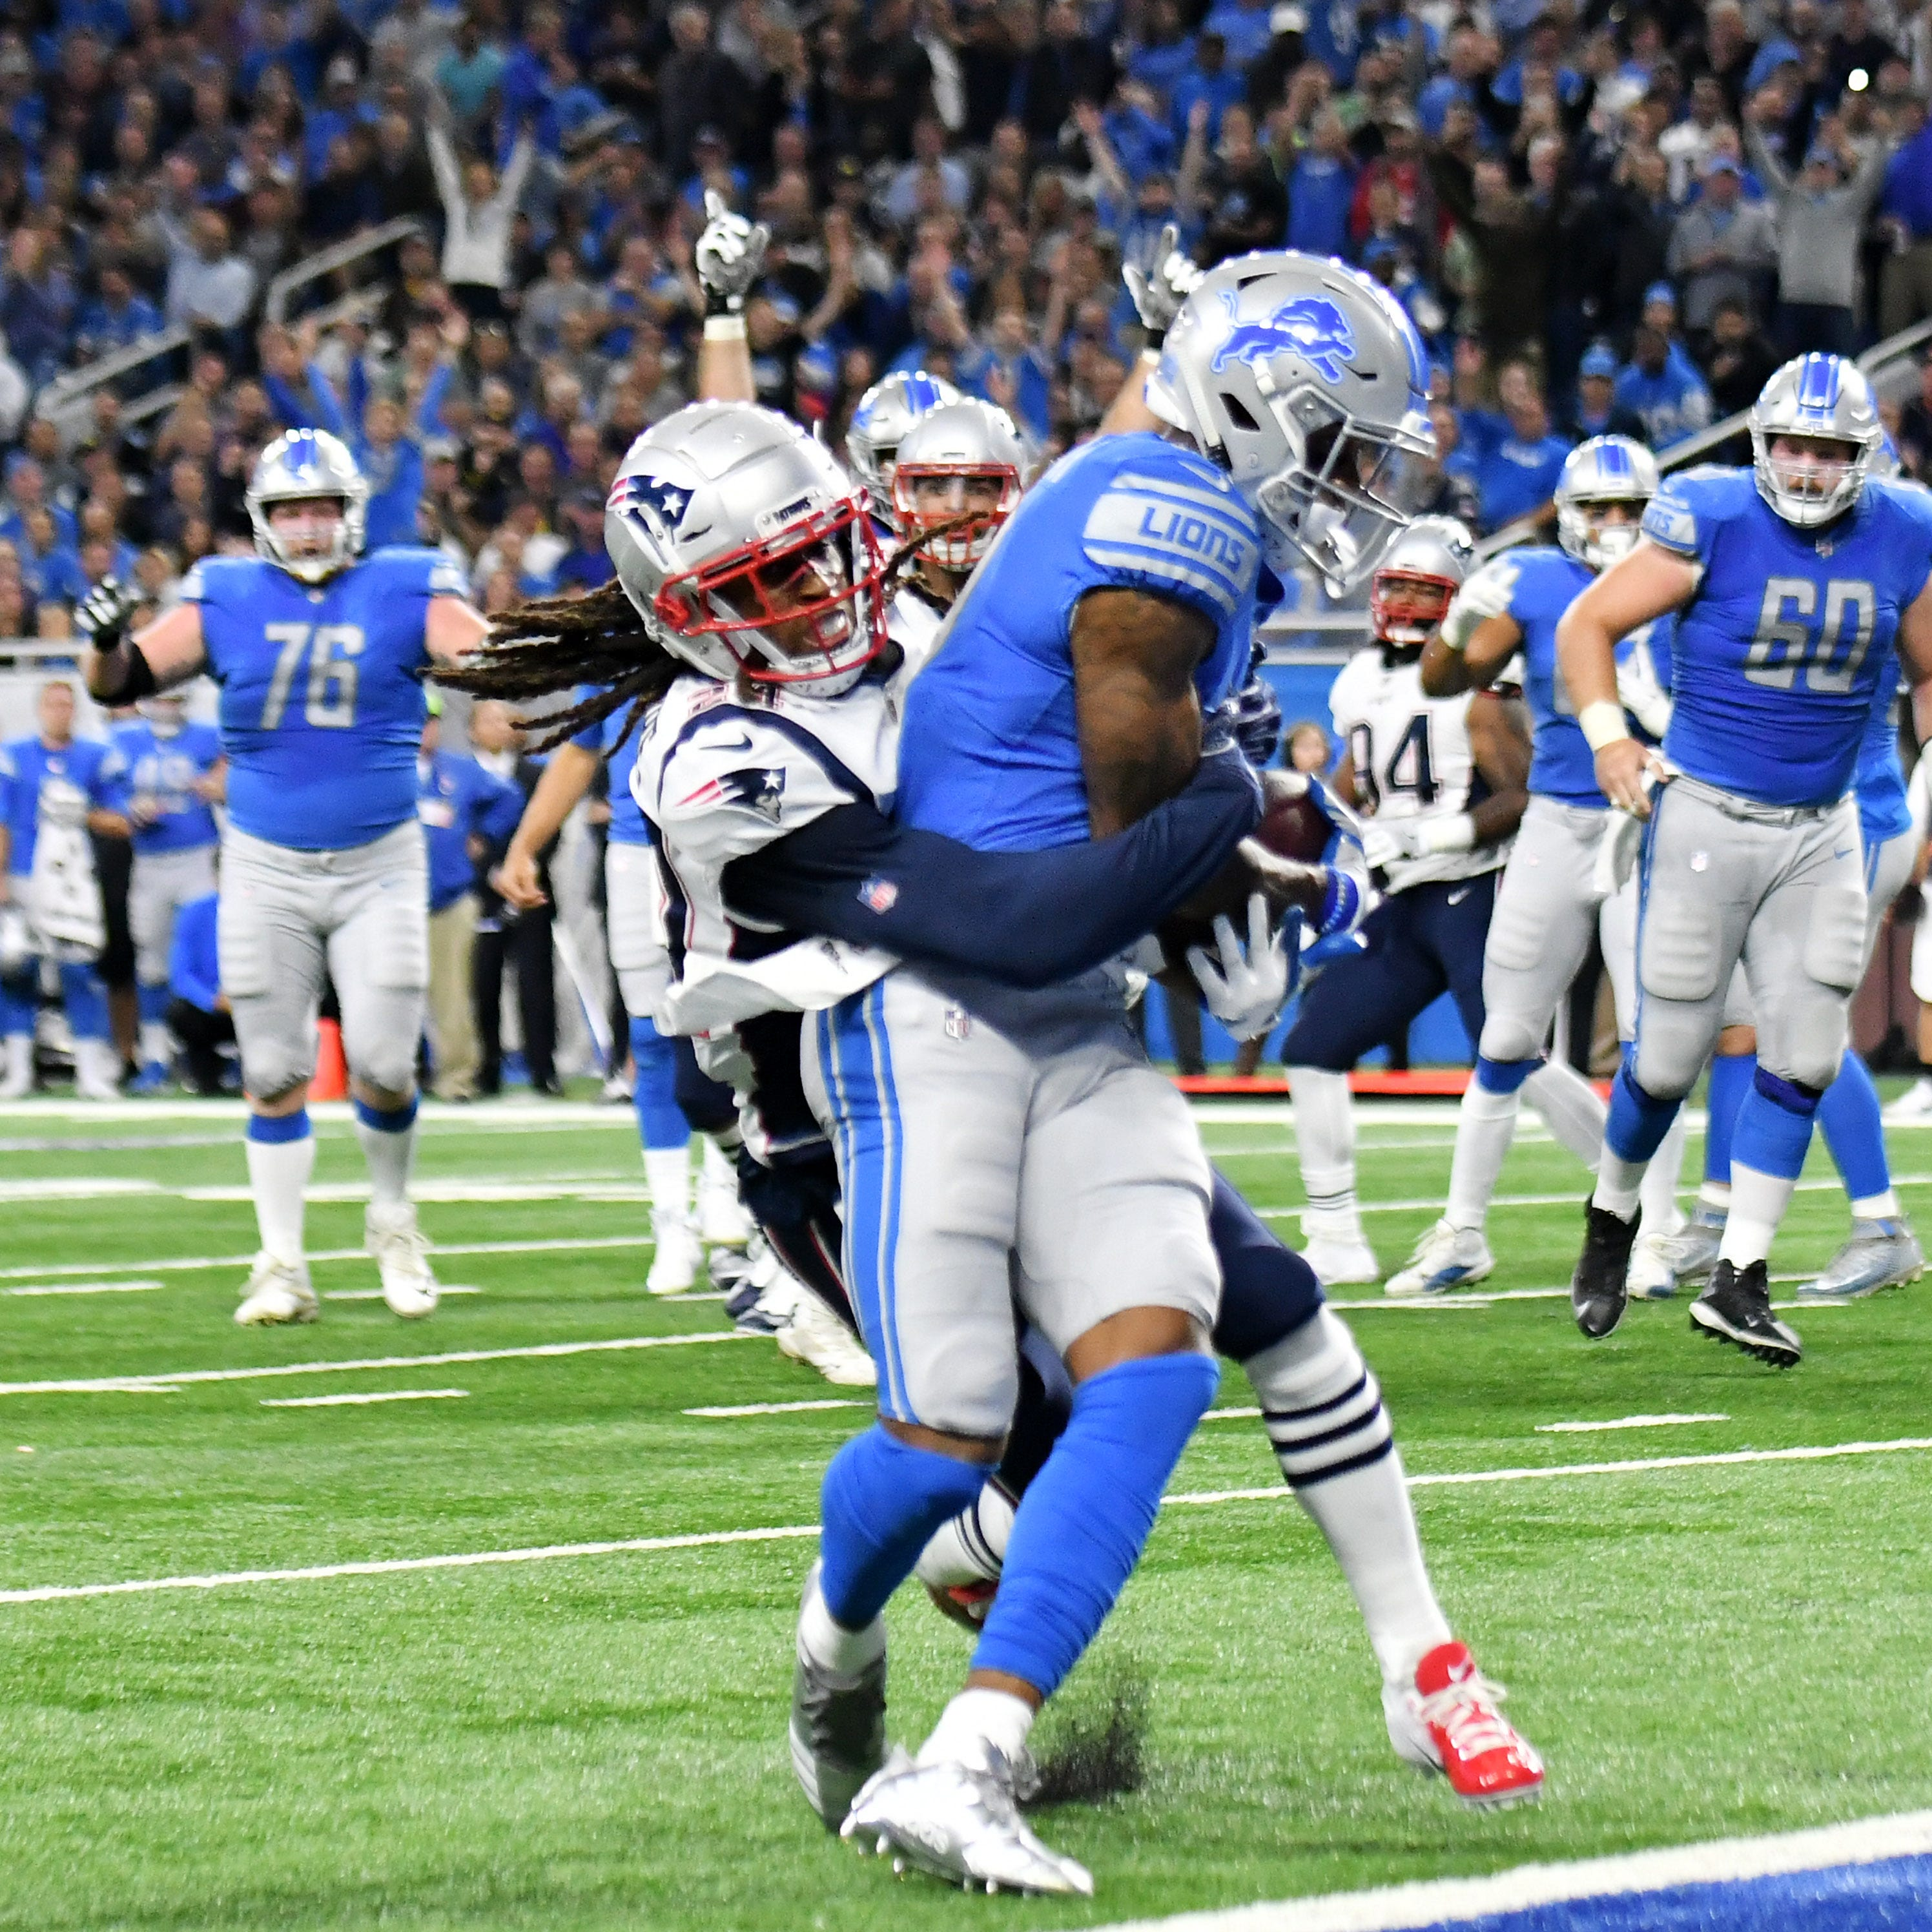 'Something to cheer about'; Lions thump Patriots to give Patricia first win